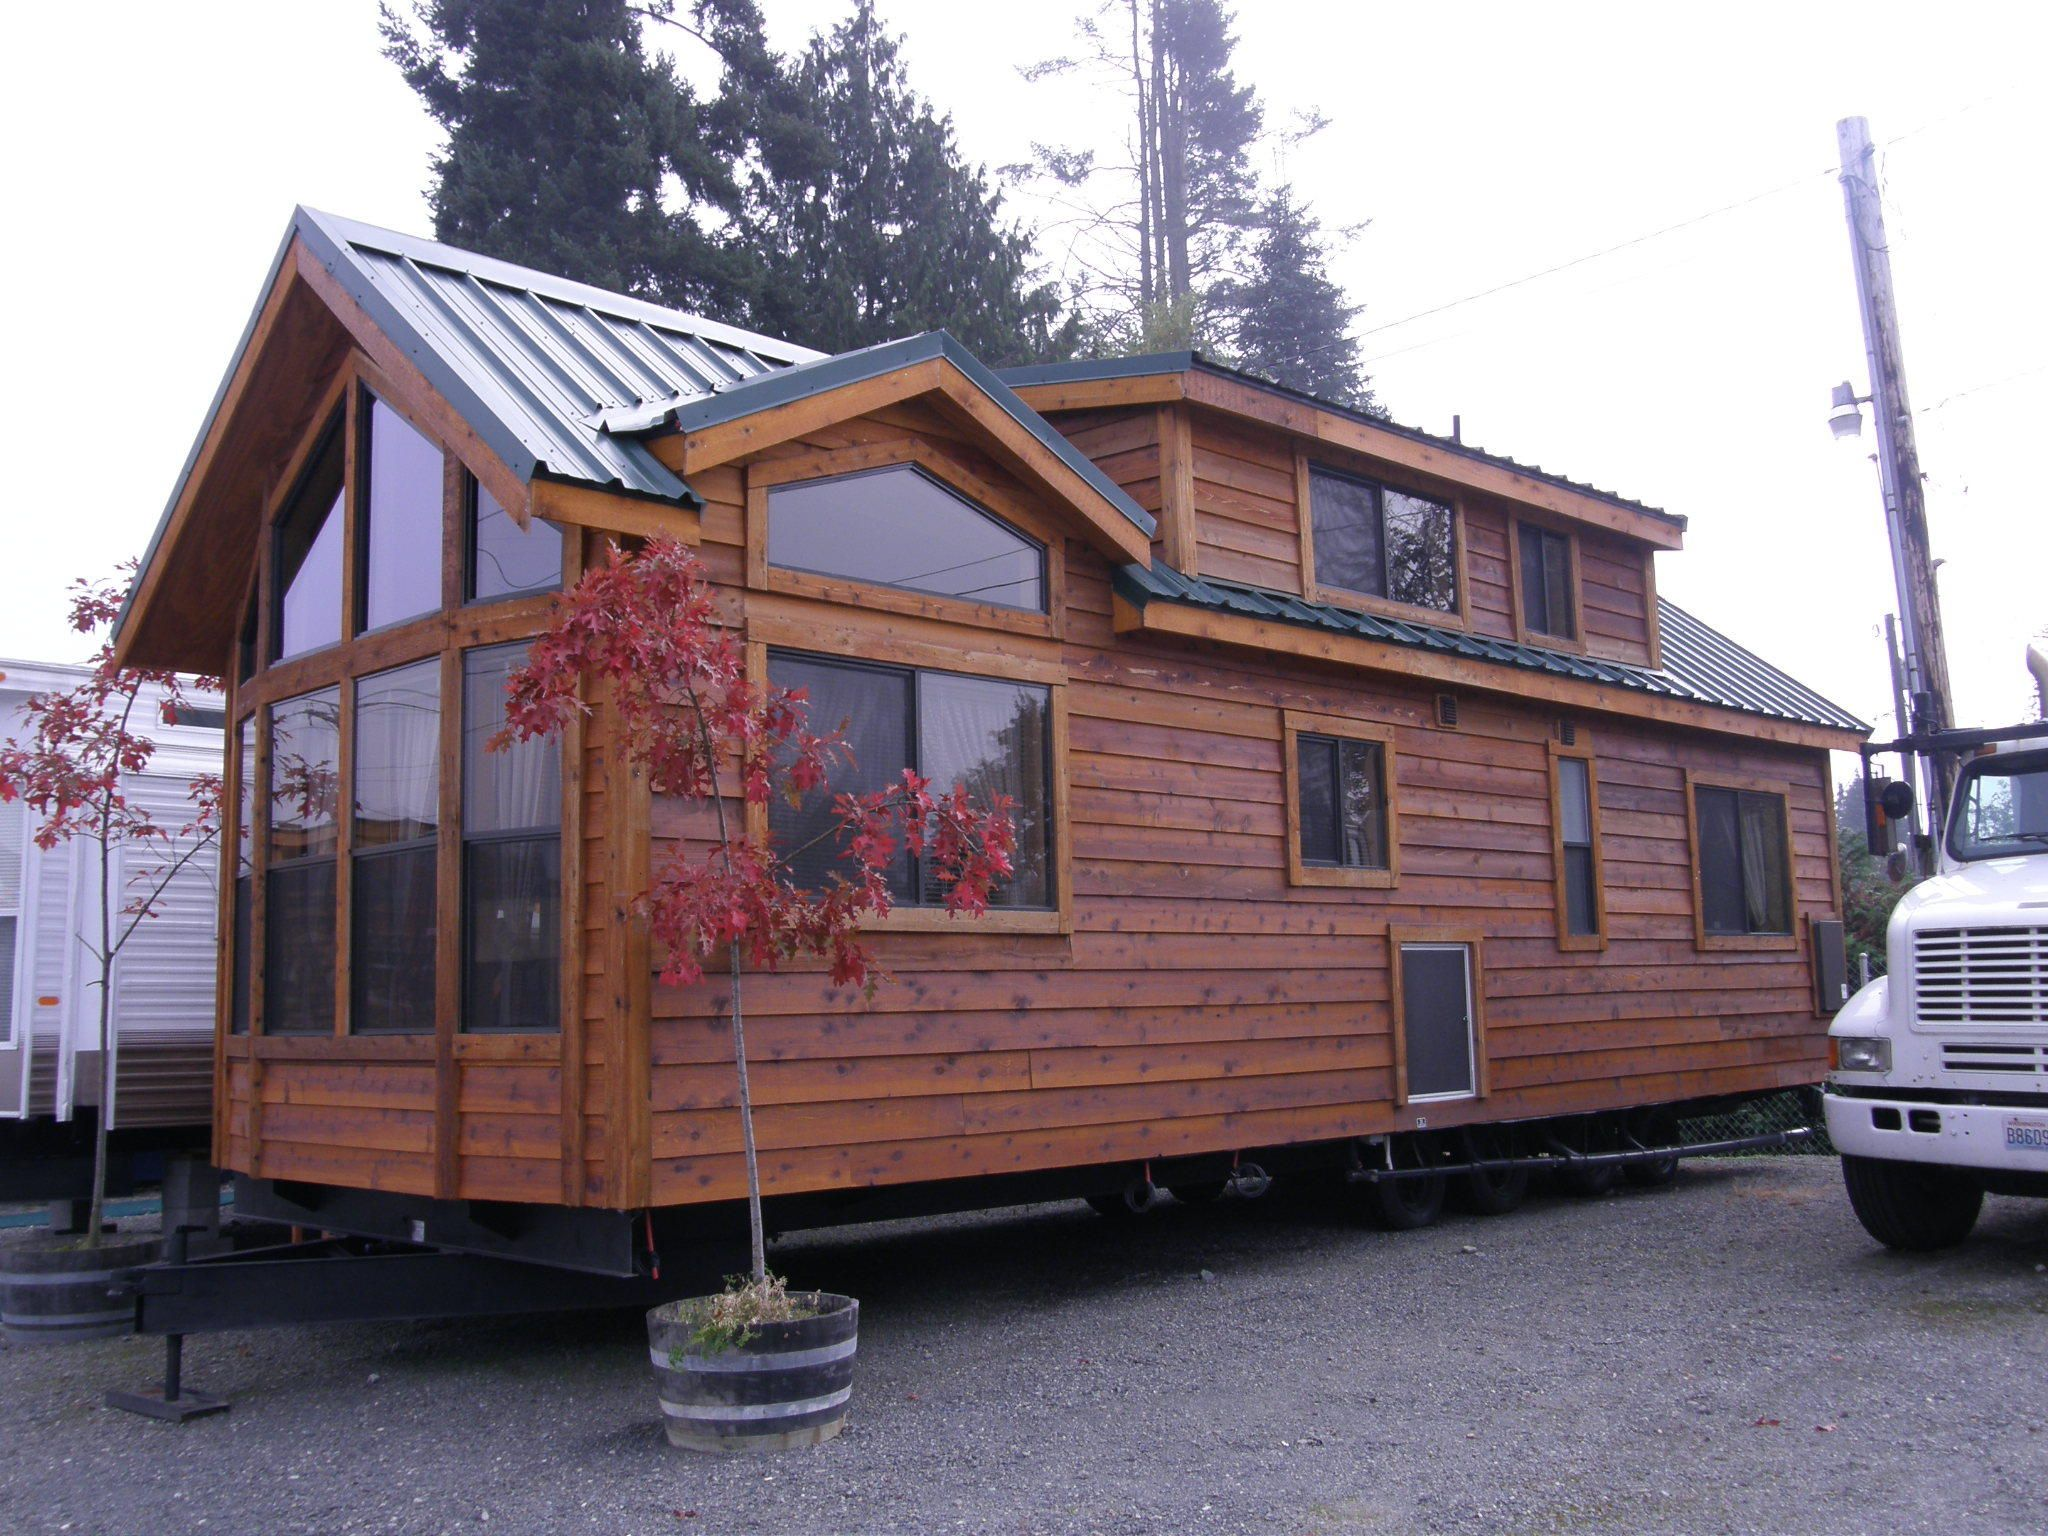 Tiny Homes For Sale House On Wheels For Sale  Visit Open Bigtiny House On Wheels At